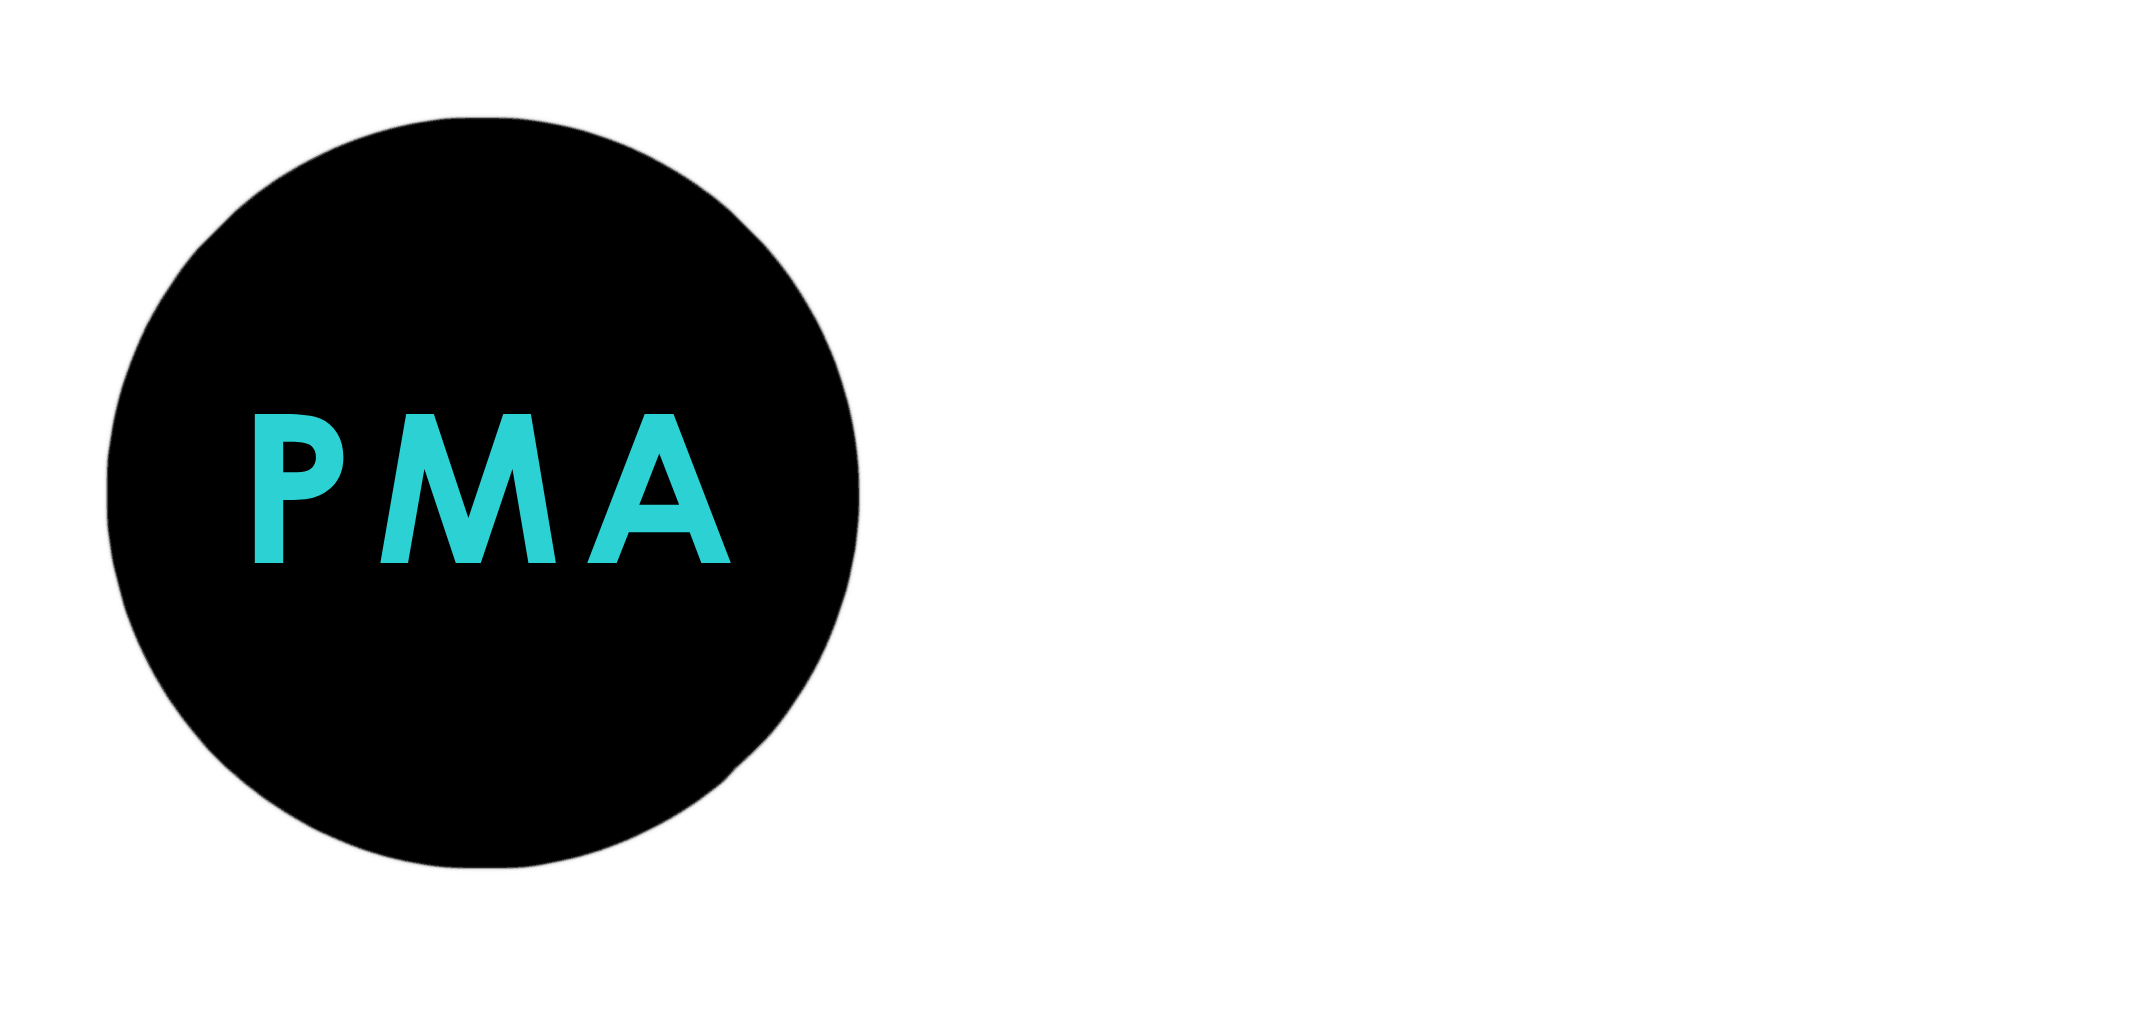 Members of the Personal Managers' Association